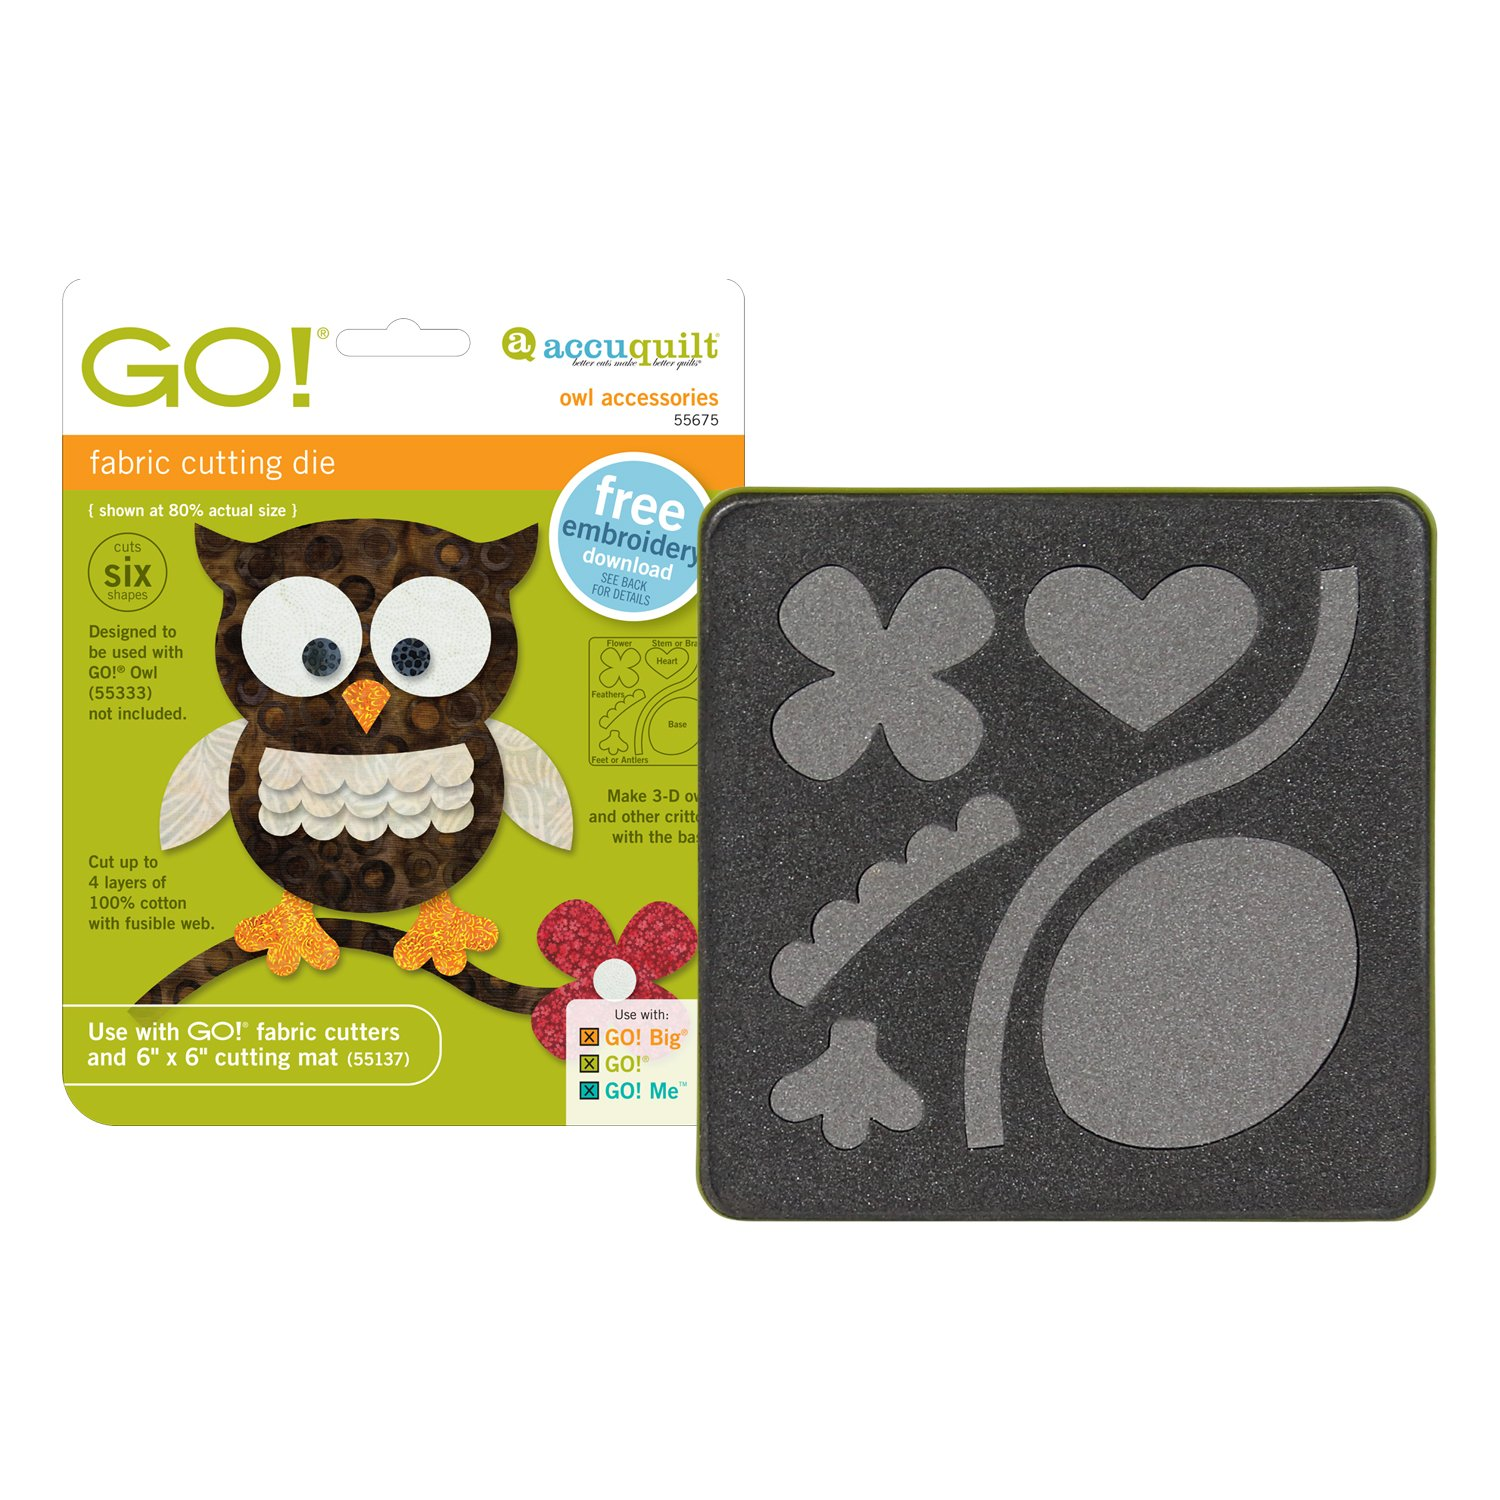 Accuquilt Go! Applique Die GO! Owl Accessories